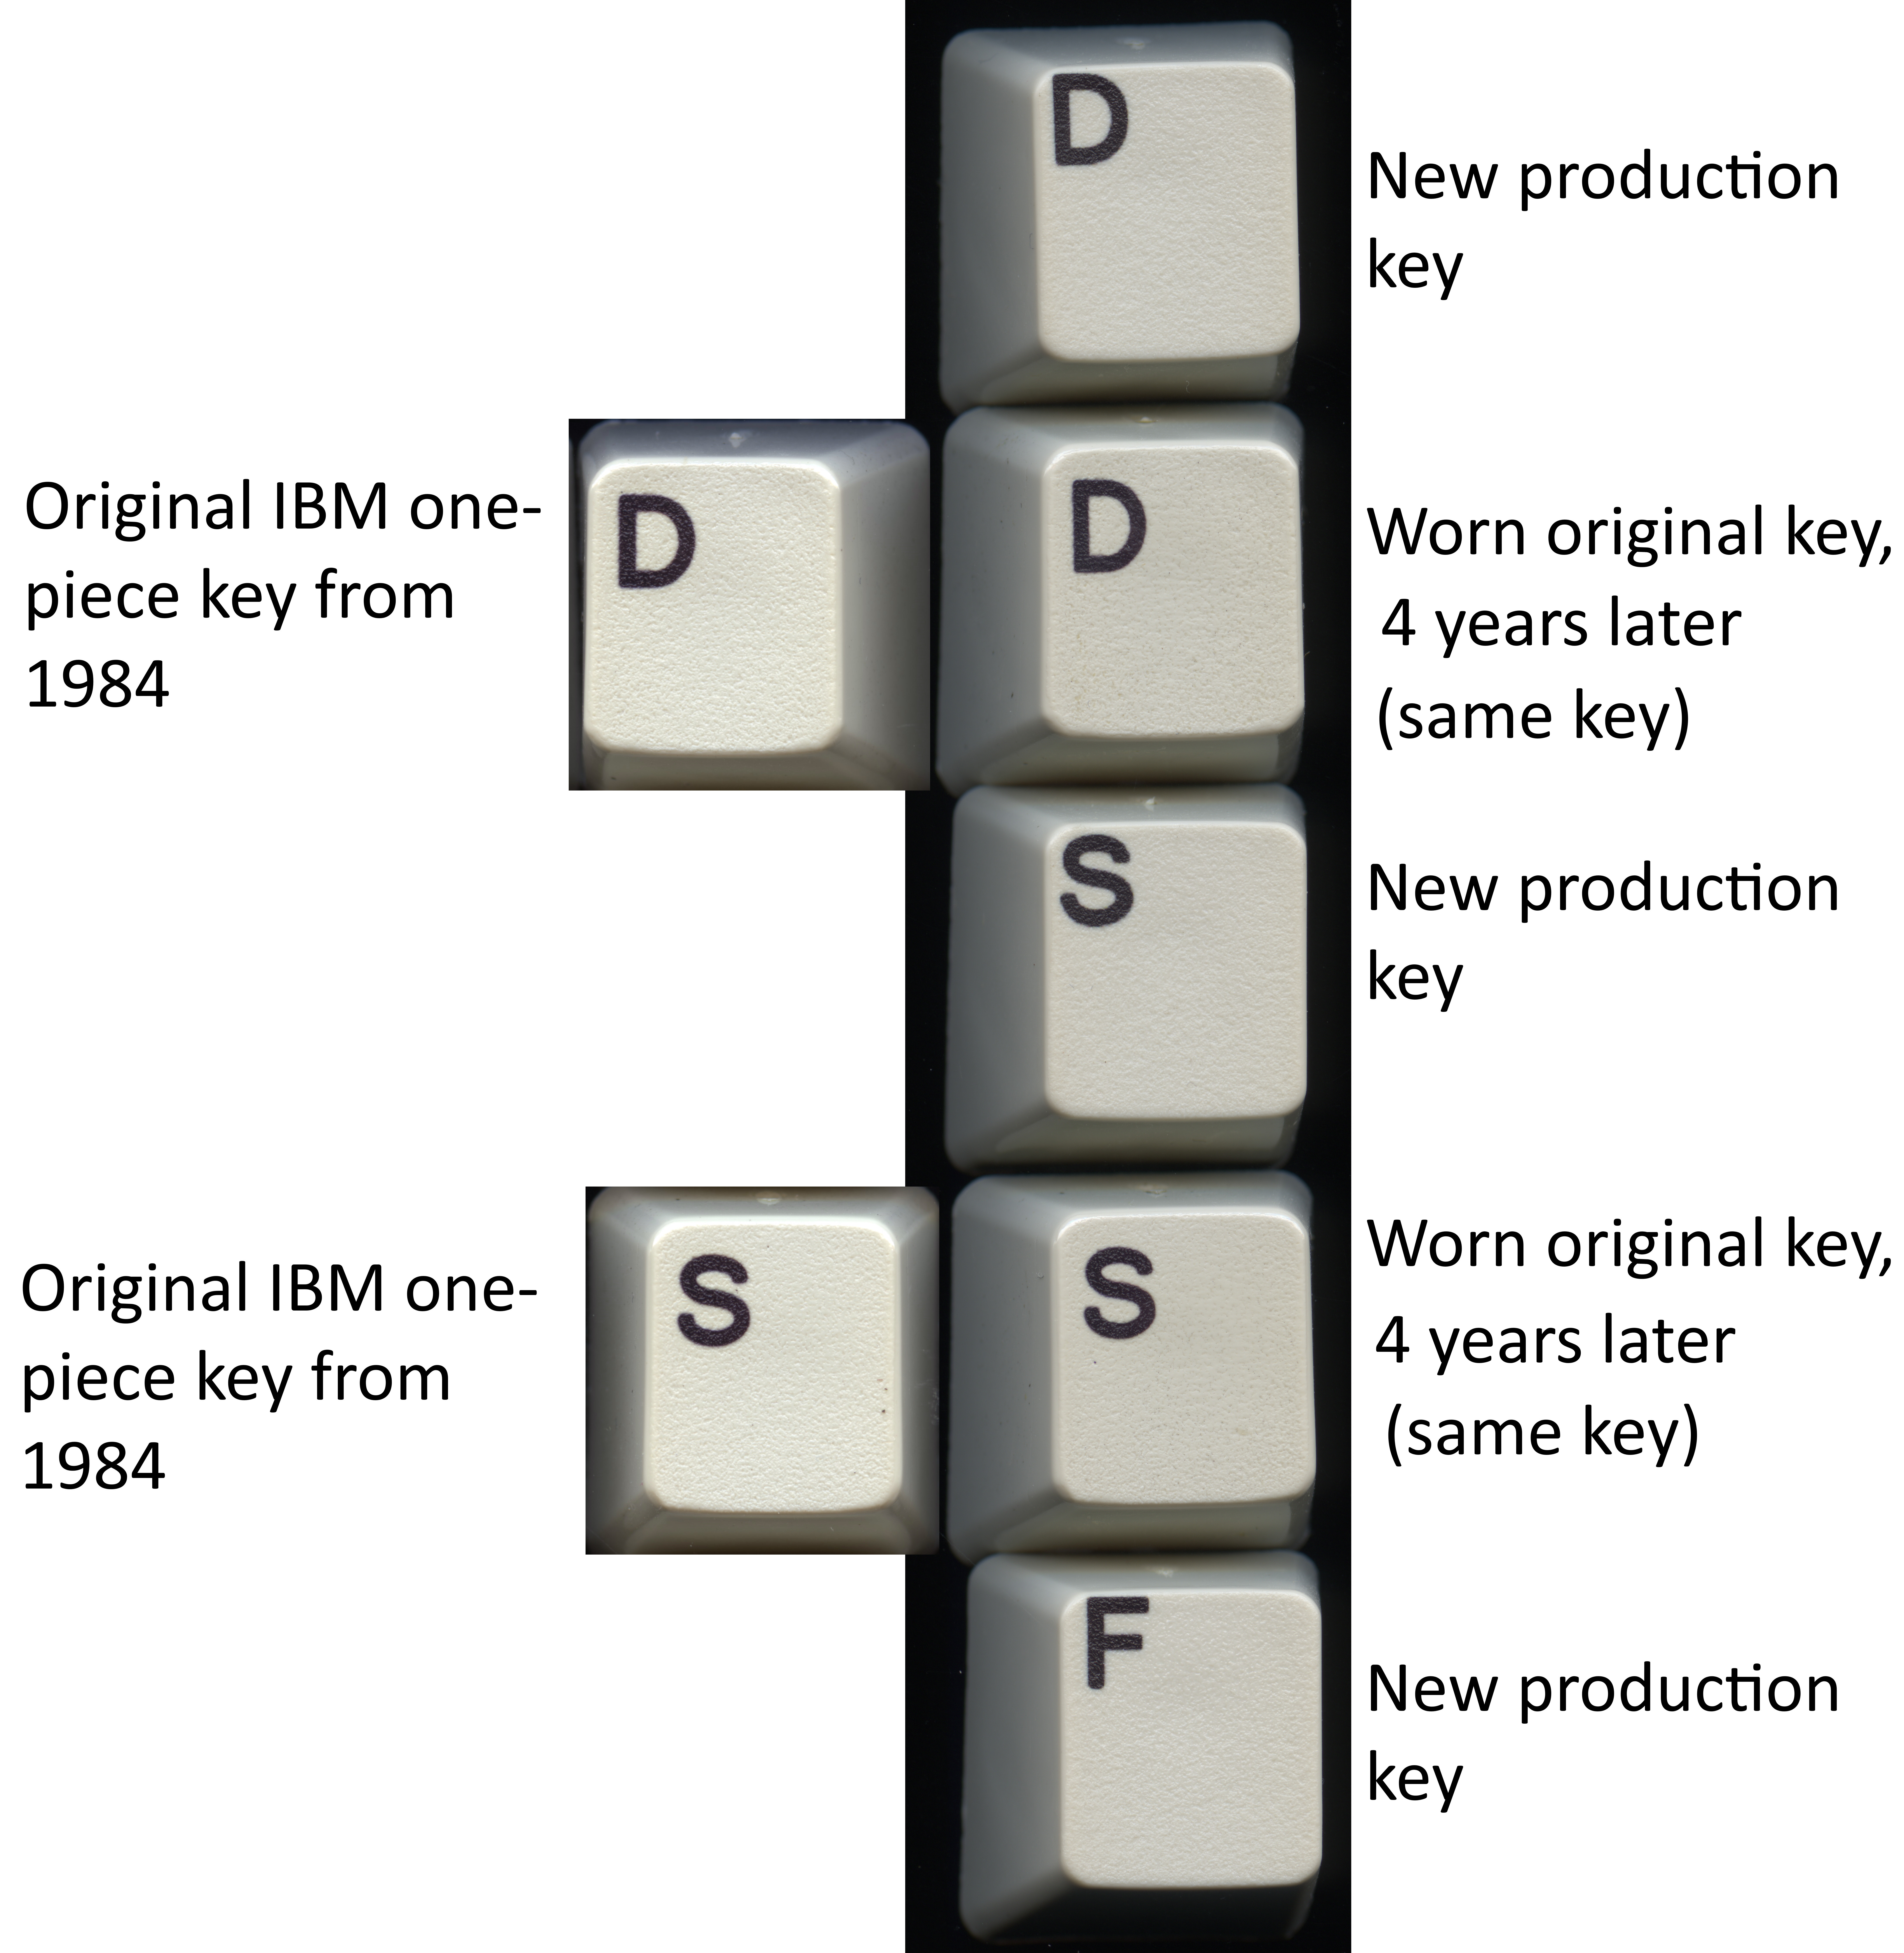 texture comparison - new production, original 6110344 Jun 1984 keys, same keys after 4 years.jpg